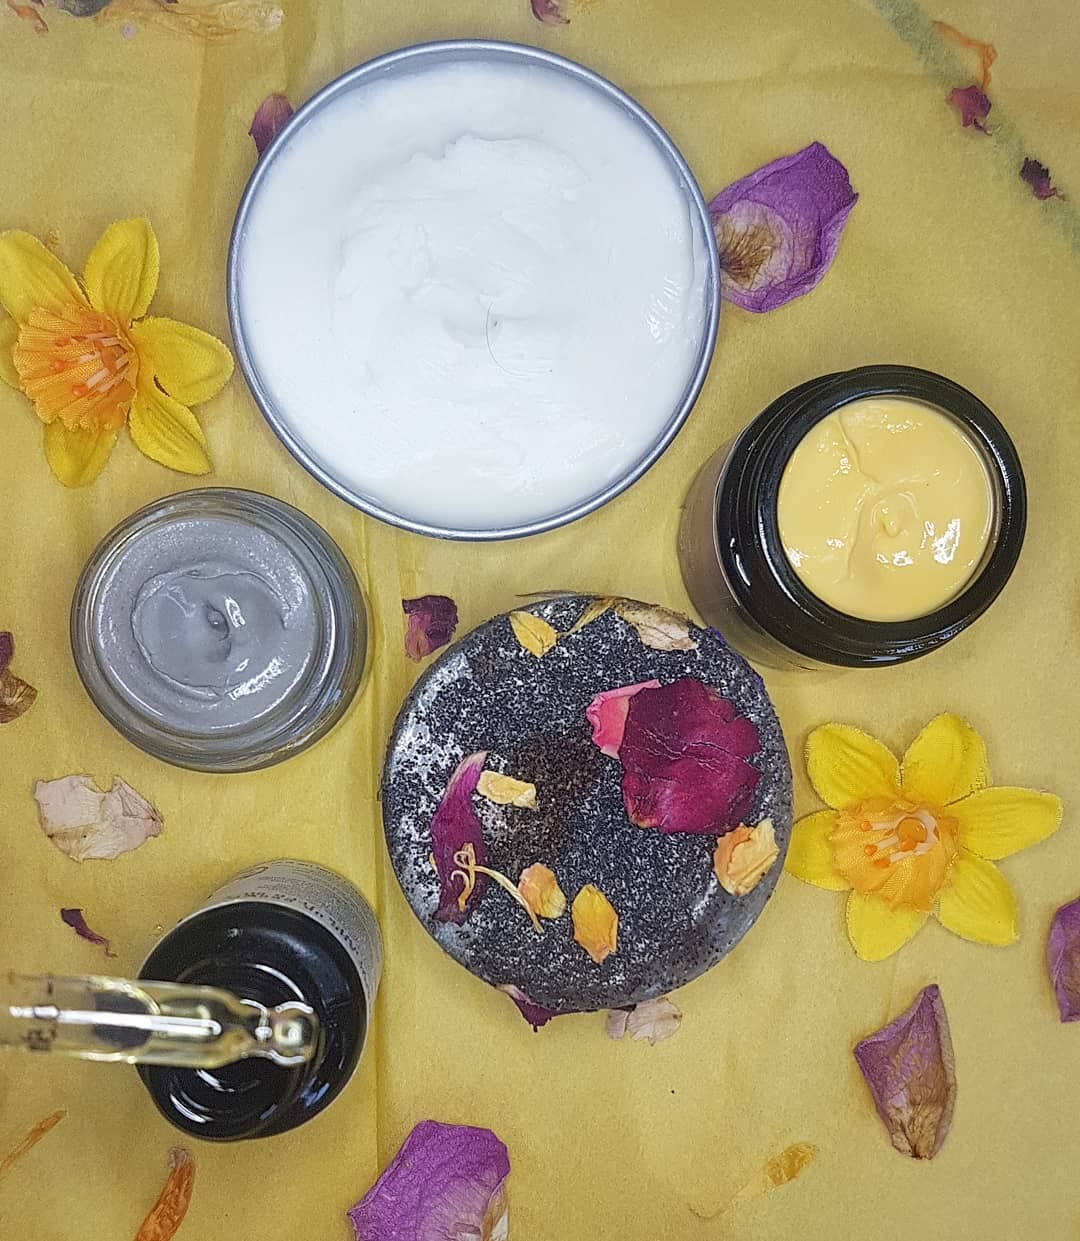 The Natural Beauty Box April 2019 Review - Skin-Tritious Plastic Free edit